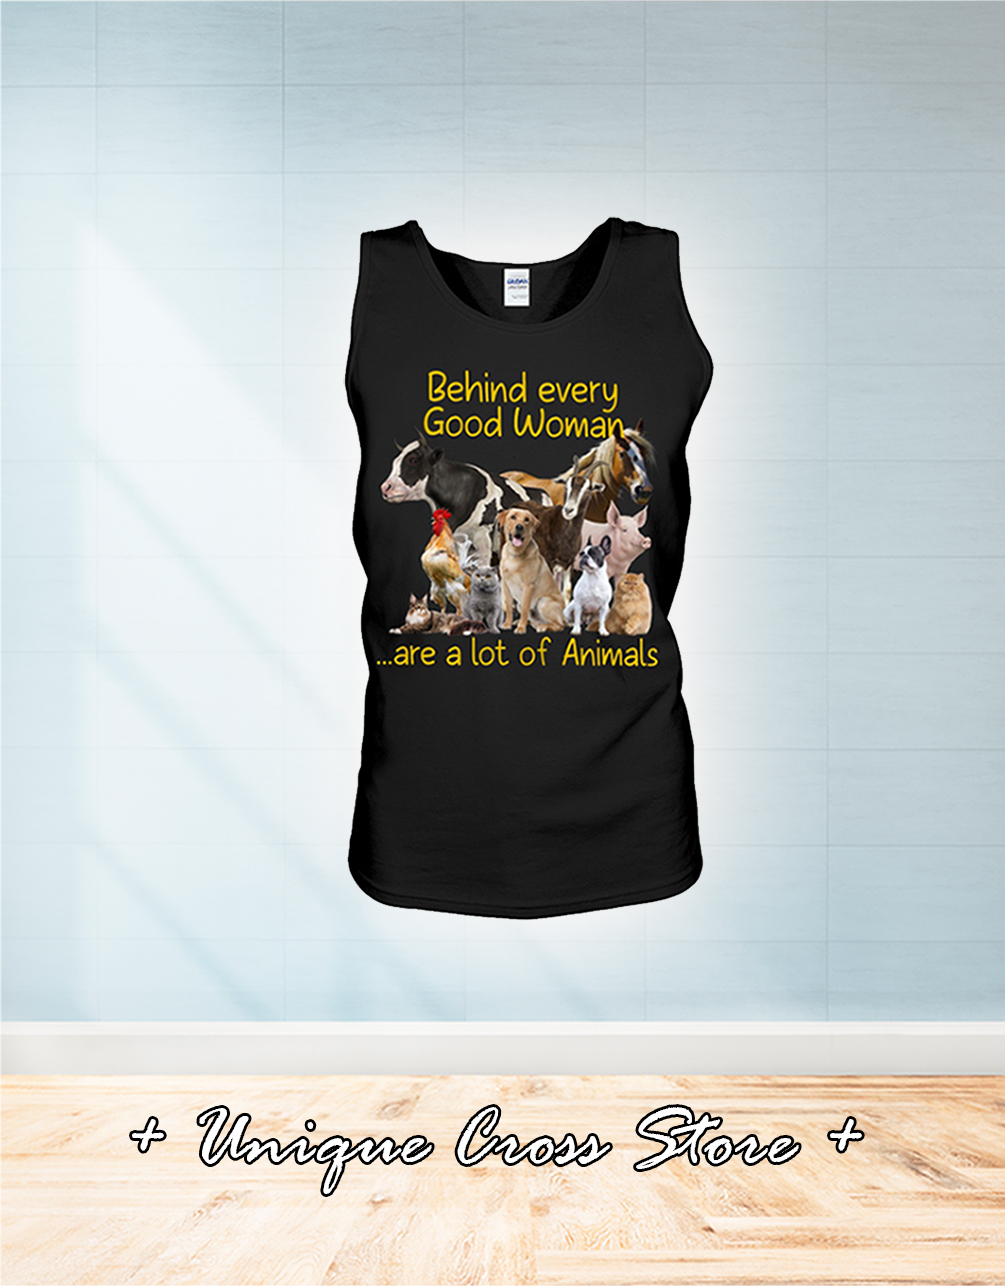 Behind every good woman are a lot of animals tank top